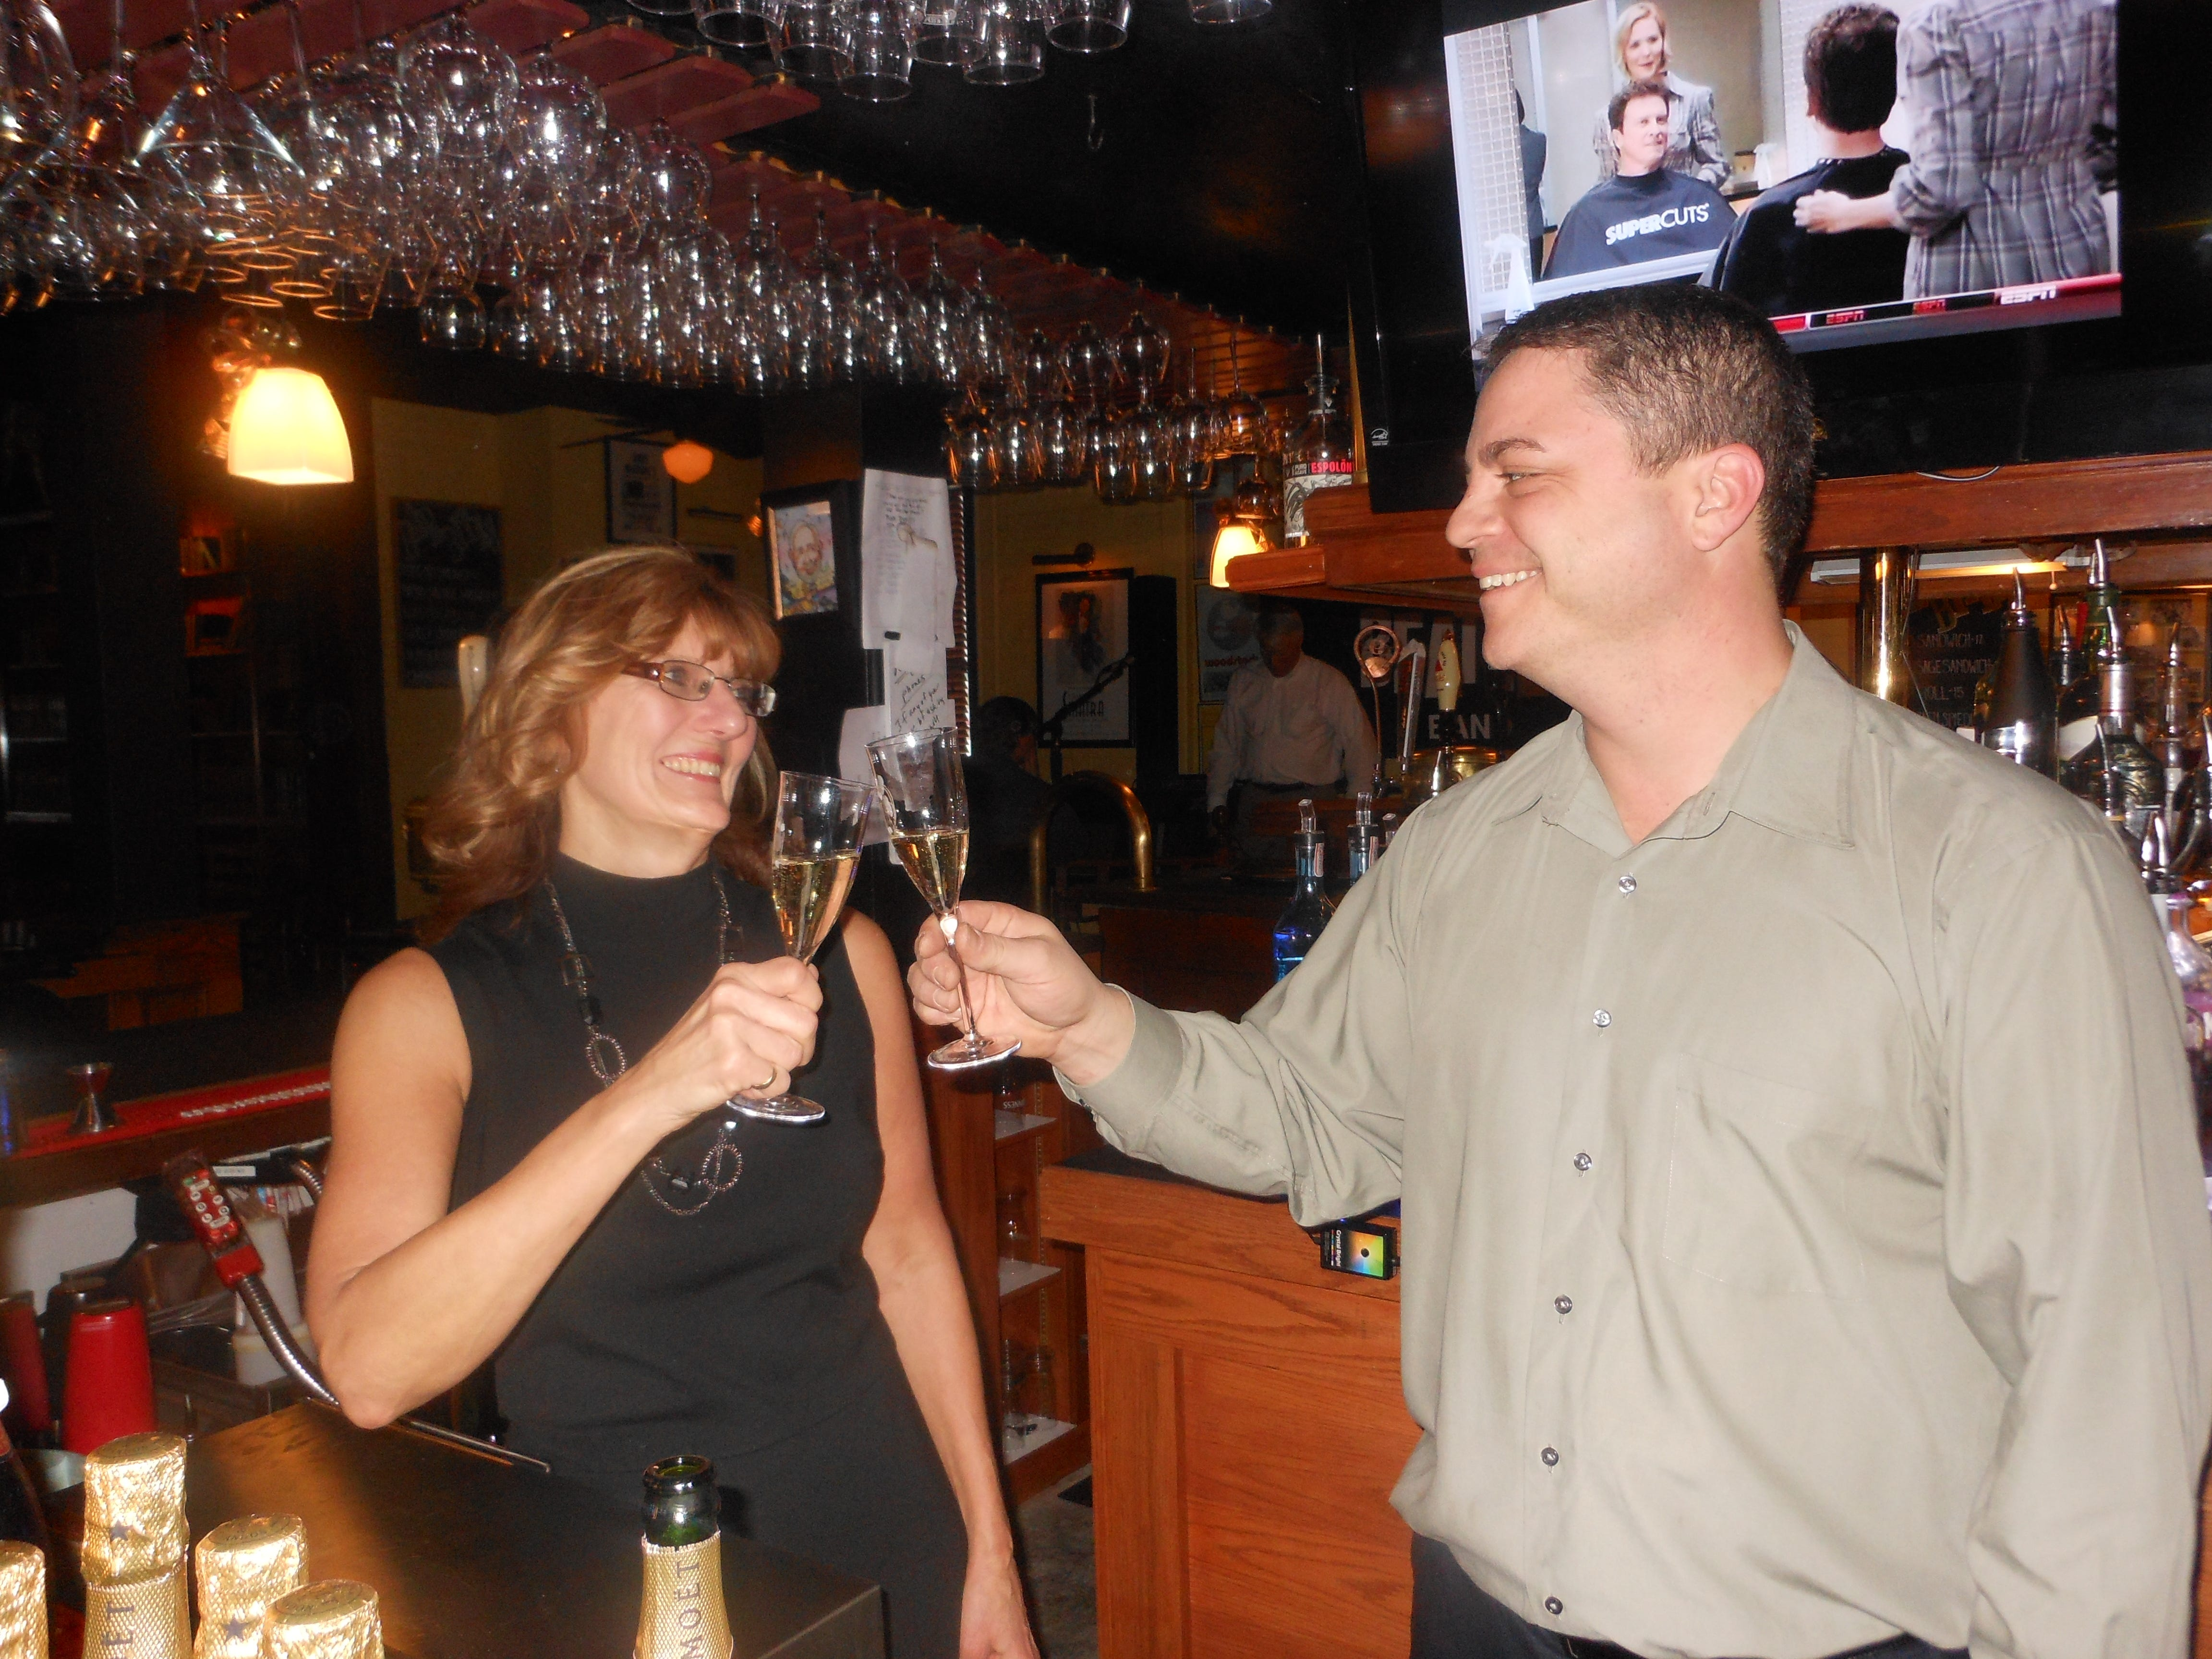 Mike Tulsey, general manager at Number 5 Restaurant in Binghamton, and Paula Alter, assistant general manager, get a head start on the New Year's Eve celebration in 2011.